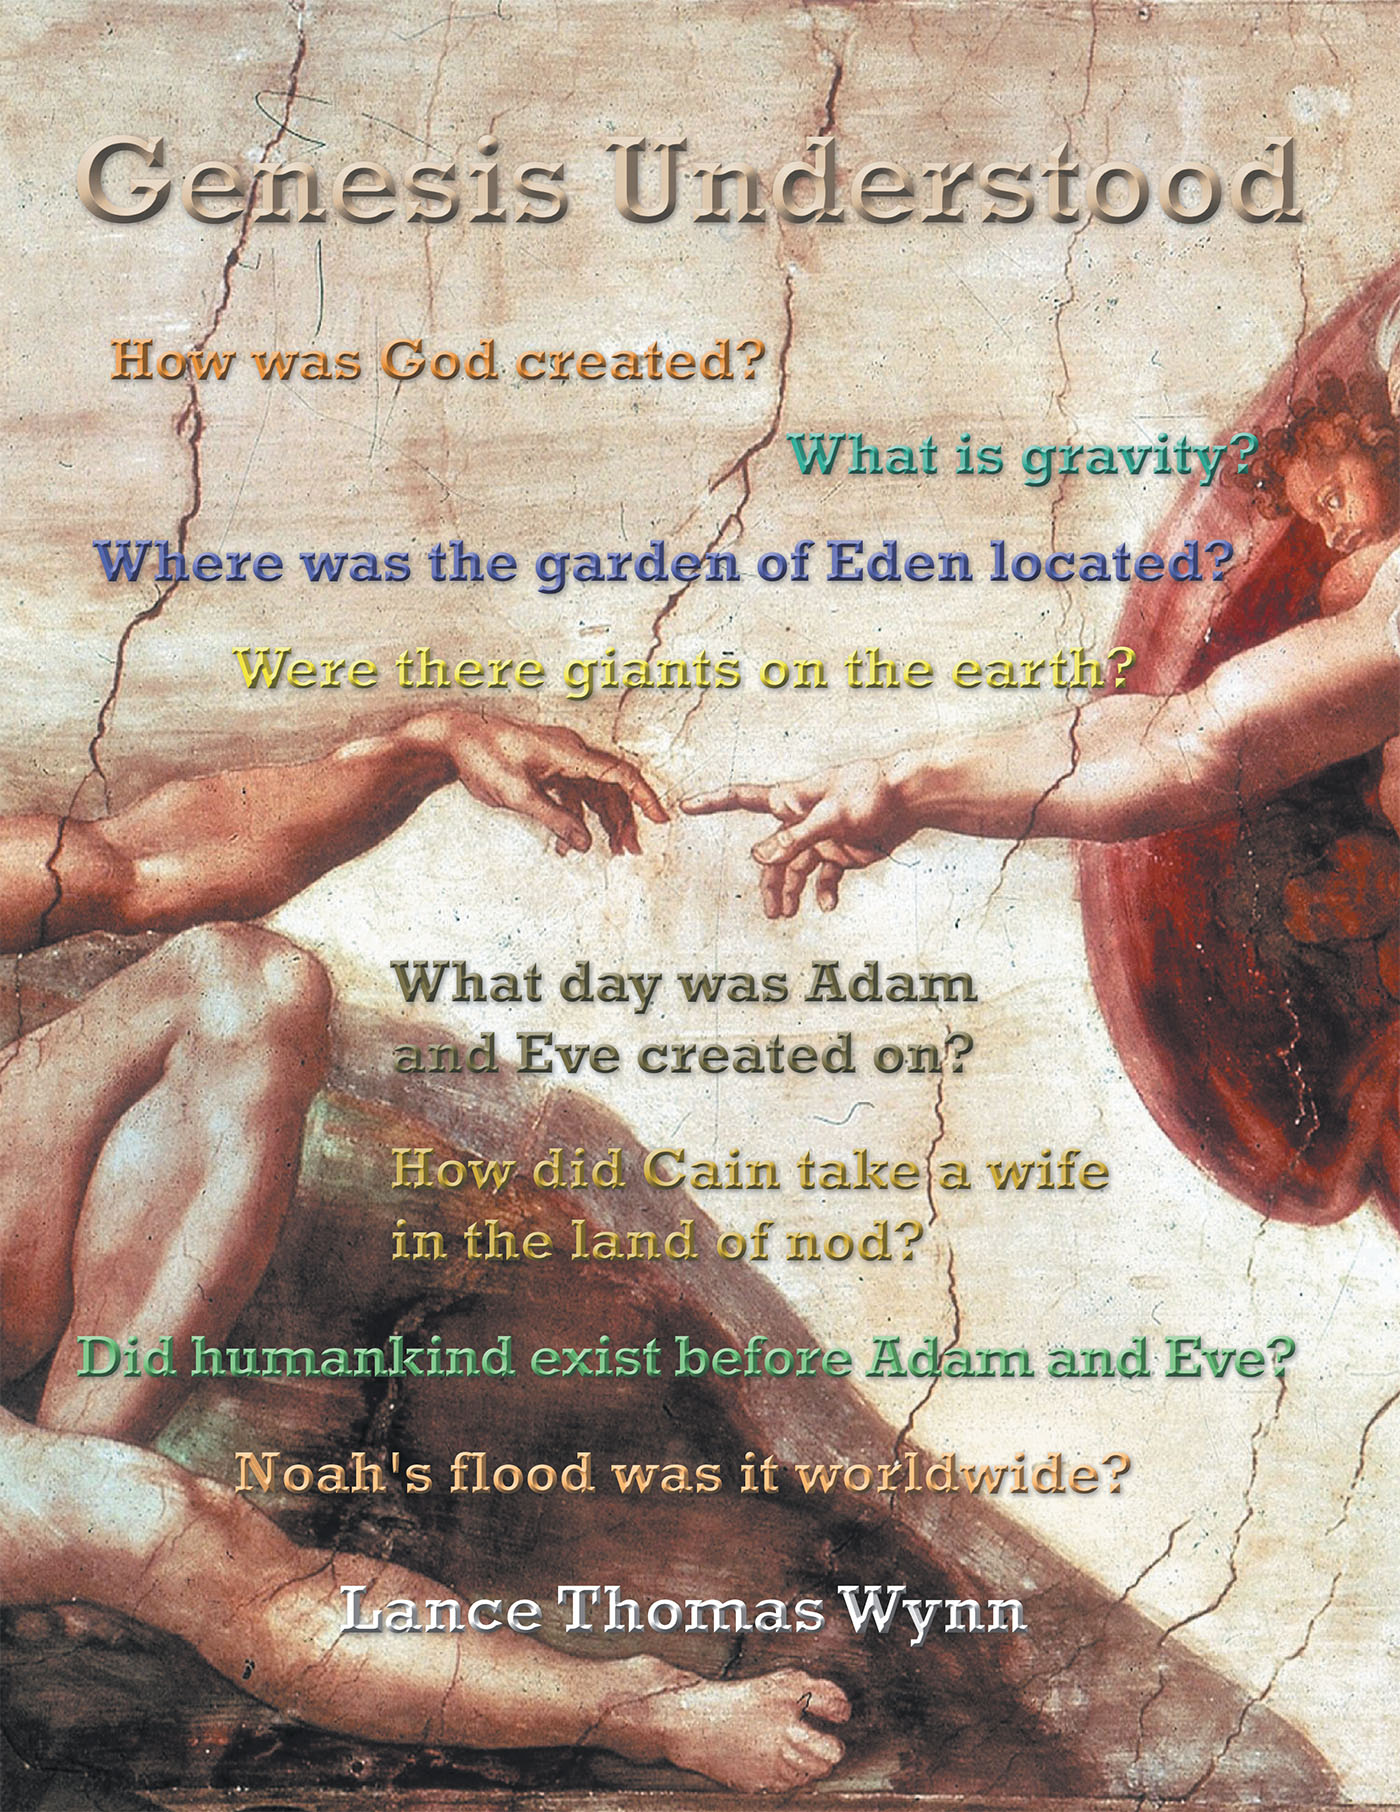 From Genesis To Today The Full Story Of The Garden Of Eden